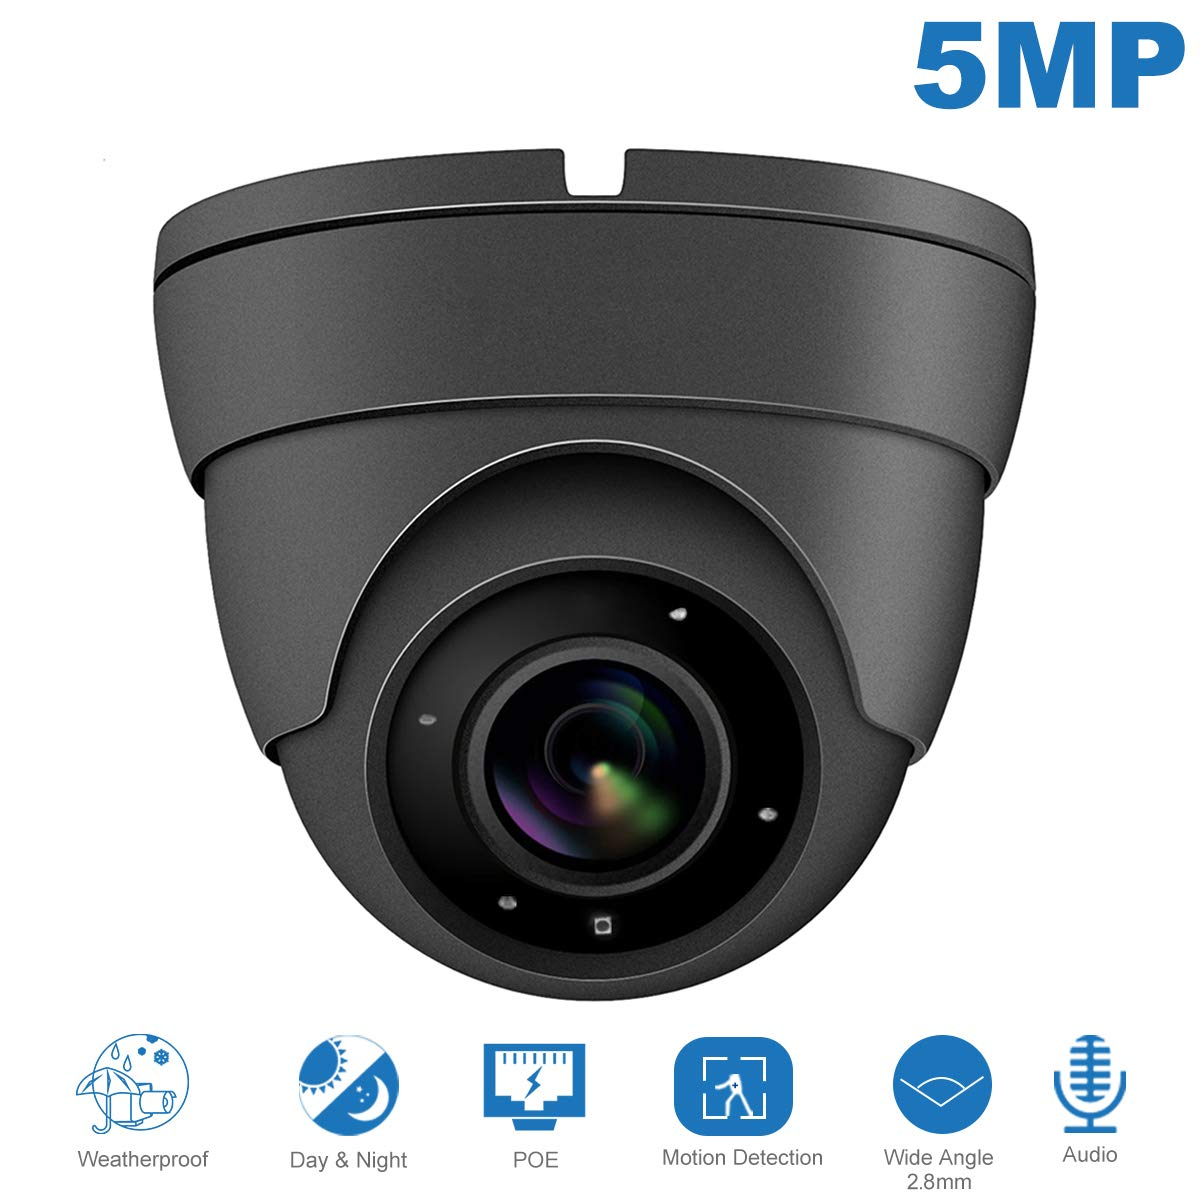 IP POE Dome 5MP Camera(Hikvision Compatible),Audio Super HD Security Camera with Microphone & ONVIF Supports,Indoor Outdoor Wide Angle 2.8 mm Lens IP66 Weatherproof 20m Night Vision#IPC-3150G-S